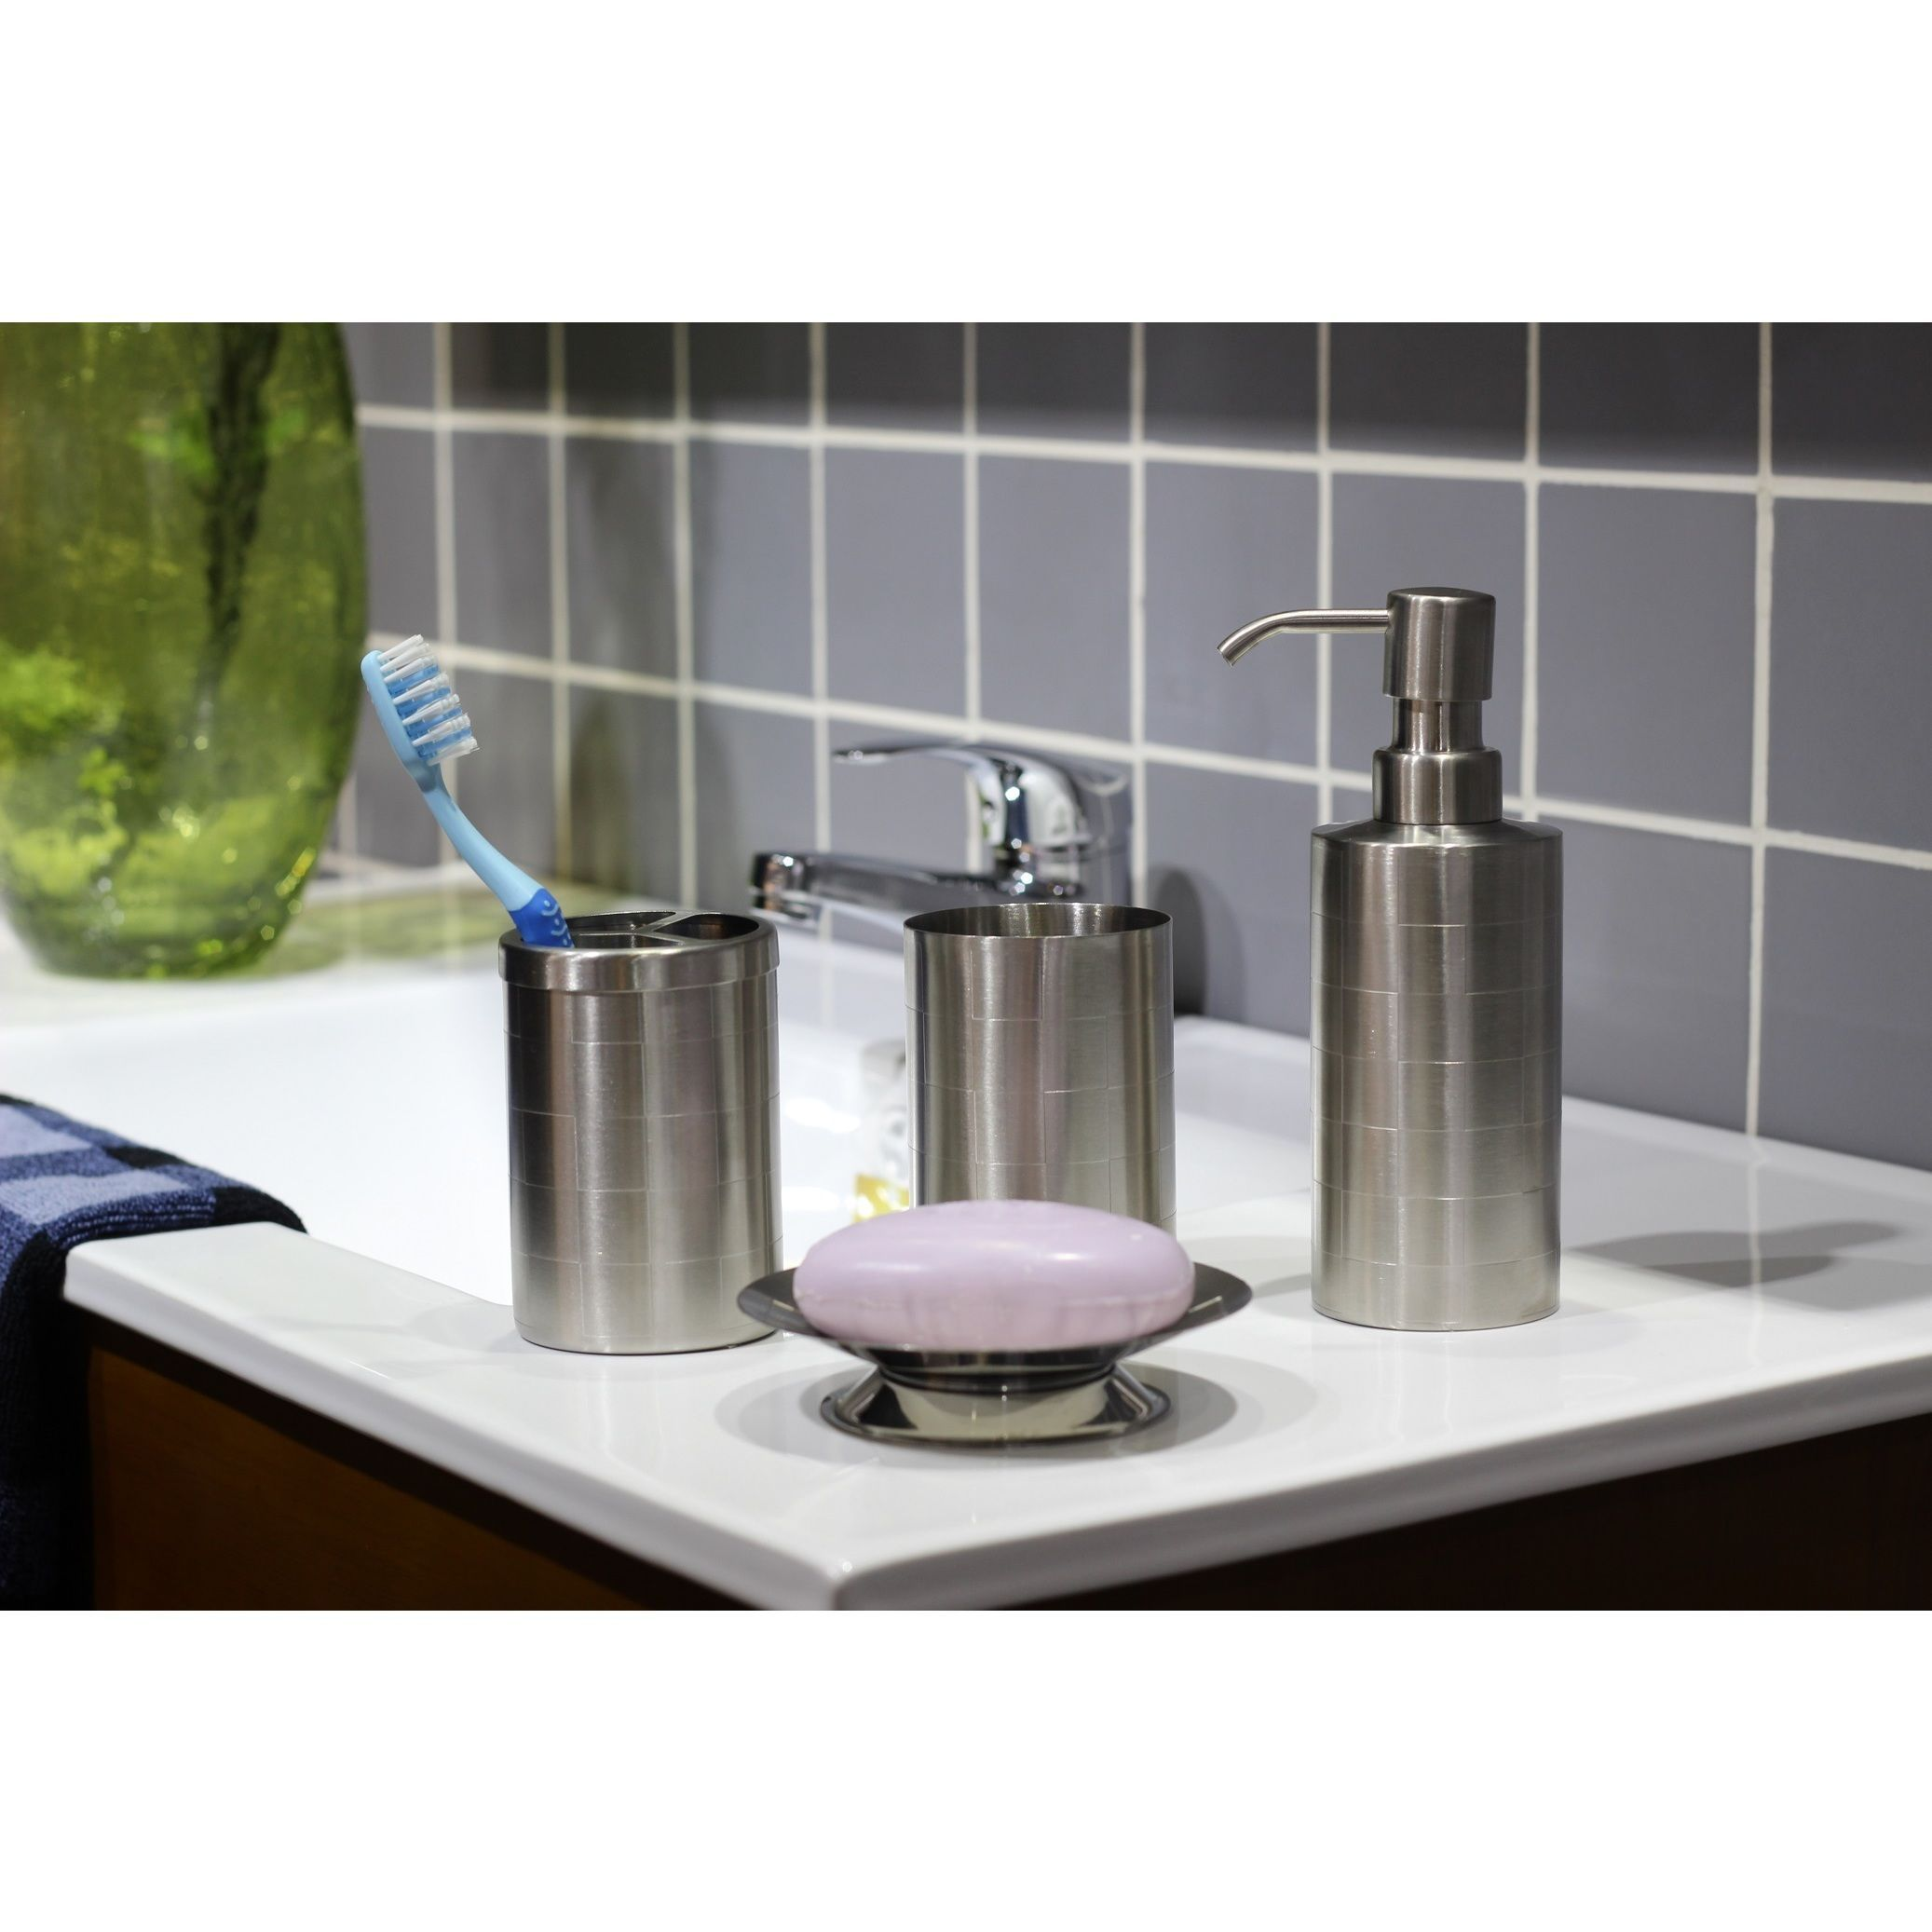 Etched Matte Stainless Steel Bath Accessory 4 Piece Set Steel